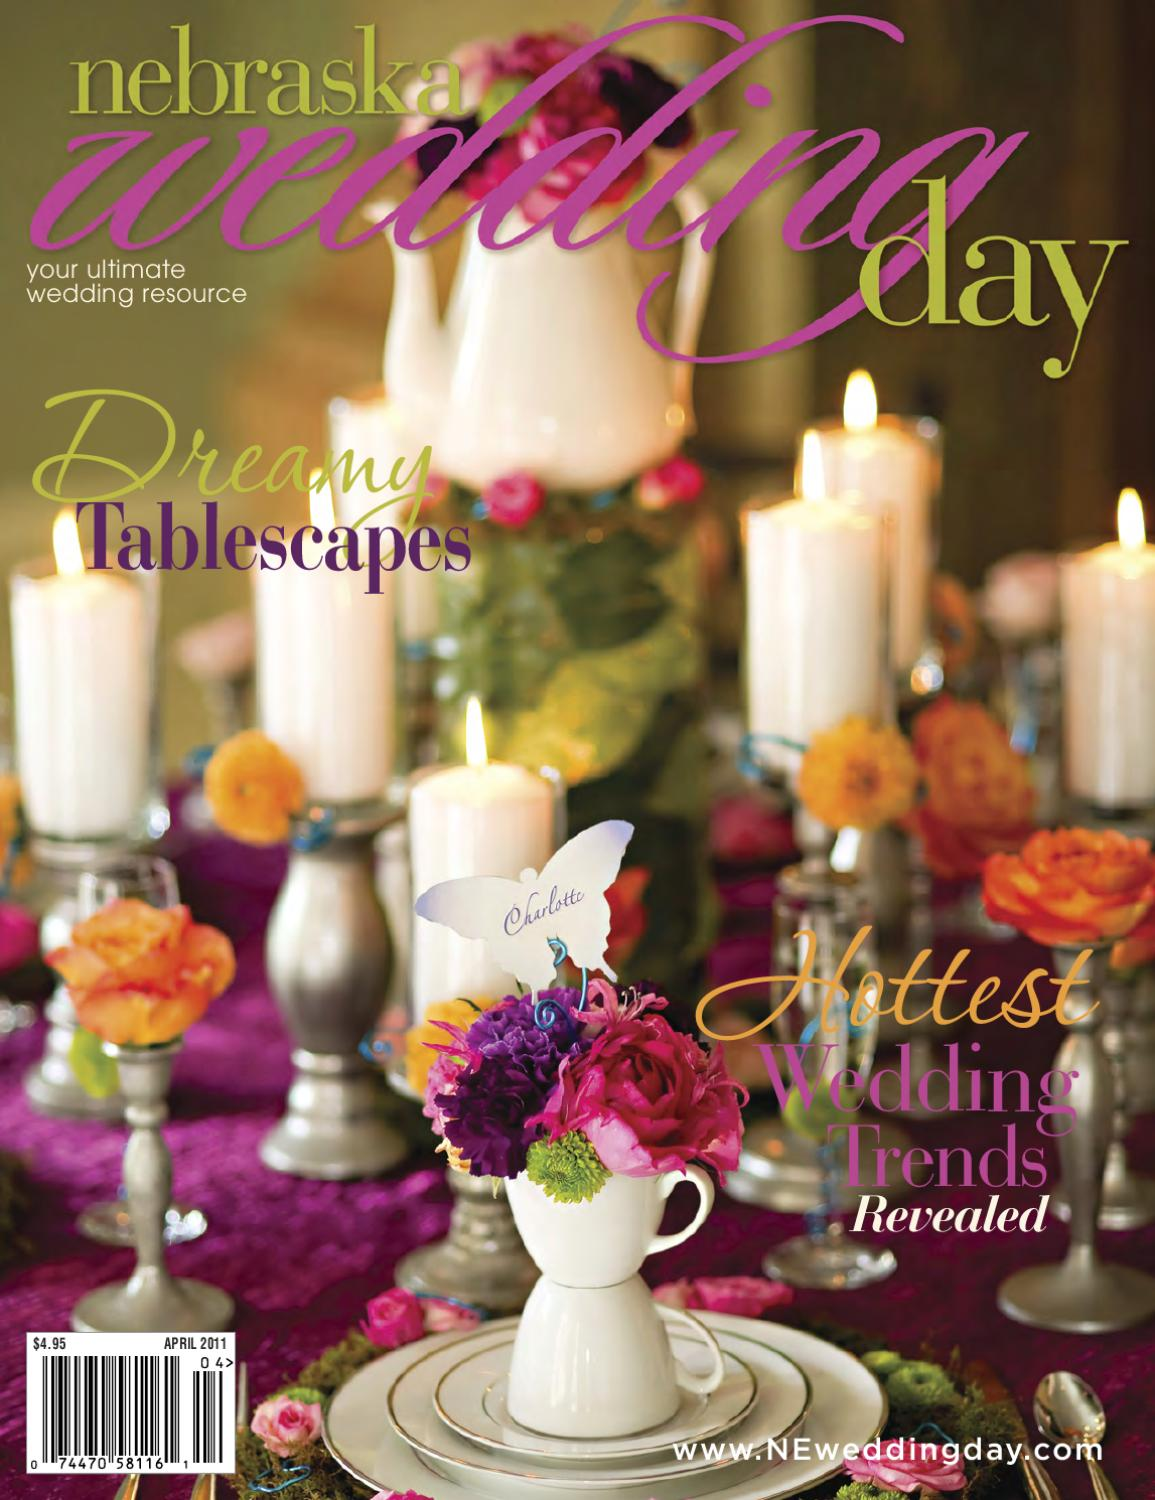 Nwd April W Links By Nebraska Wedding Day Issuu